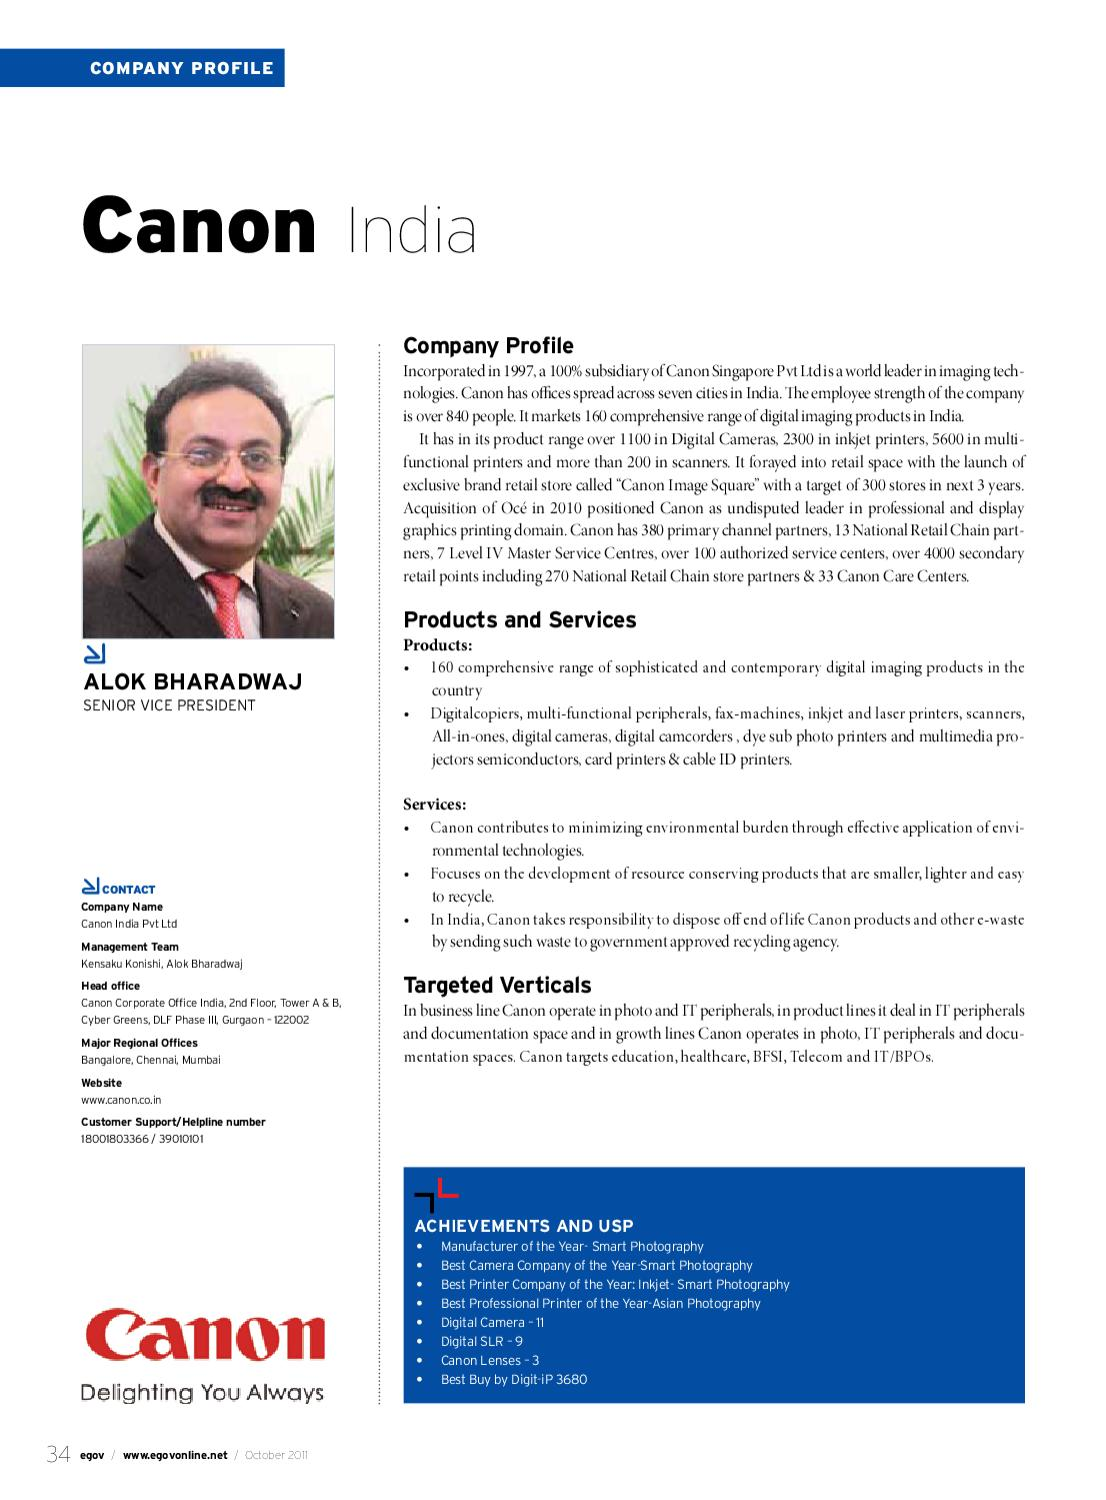 eGov-Oct-2011-[34]-Company Profile-Canon India-Alok Bharadwaj by